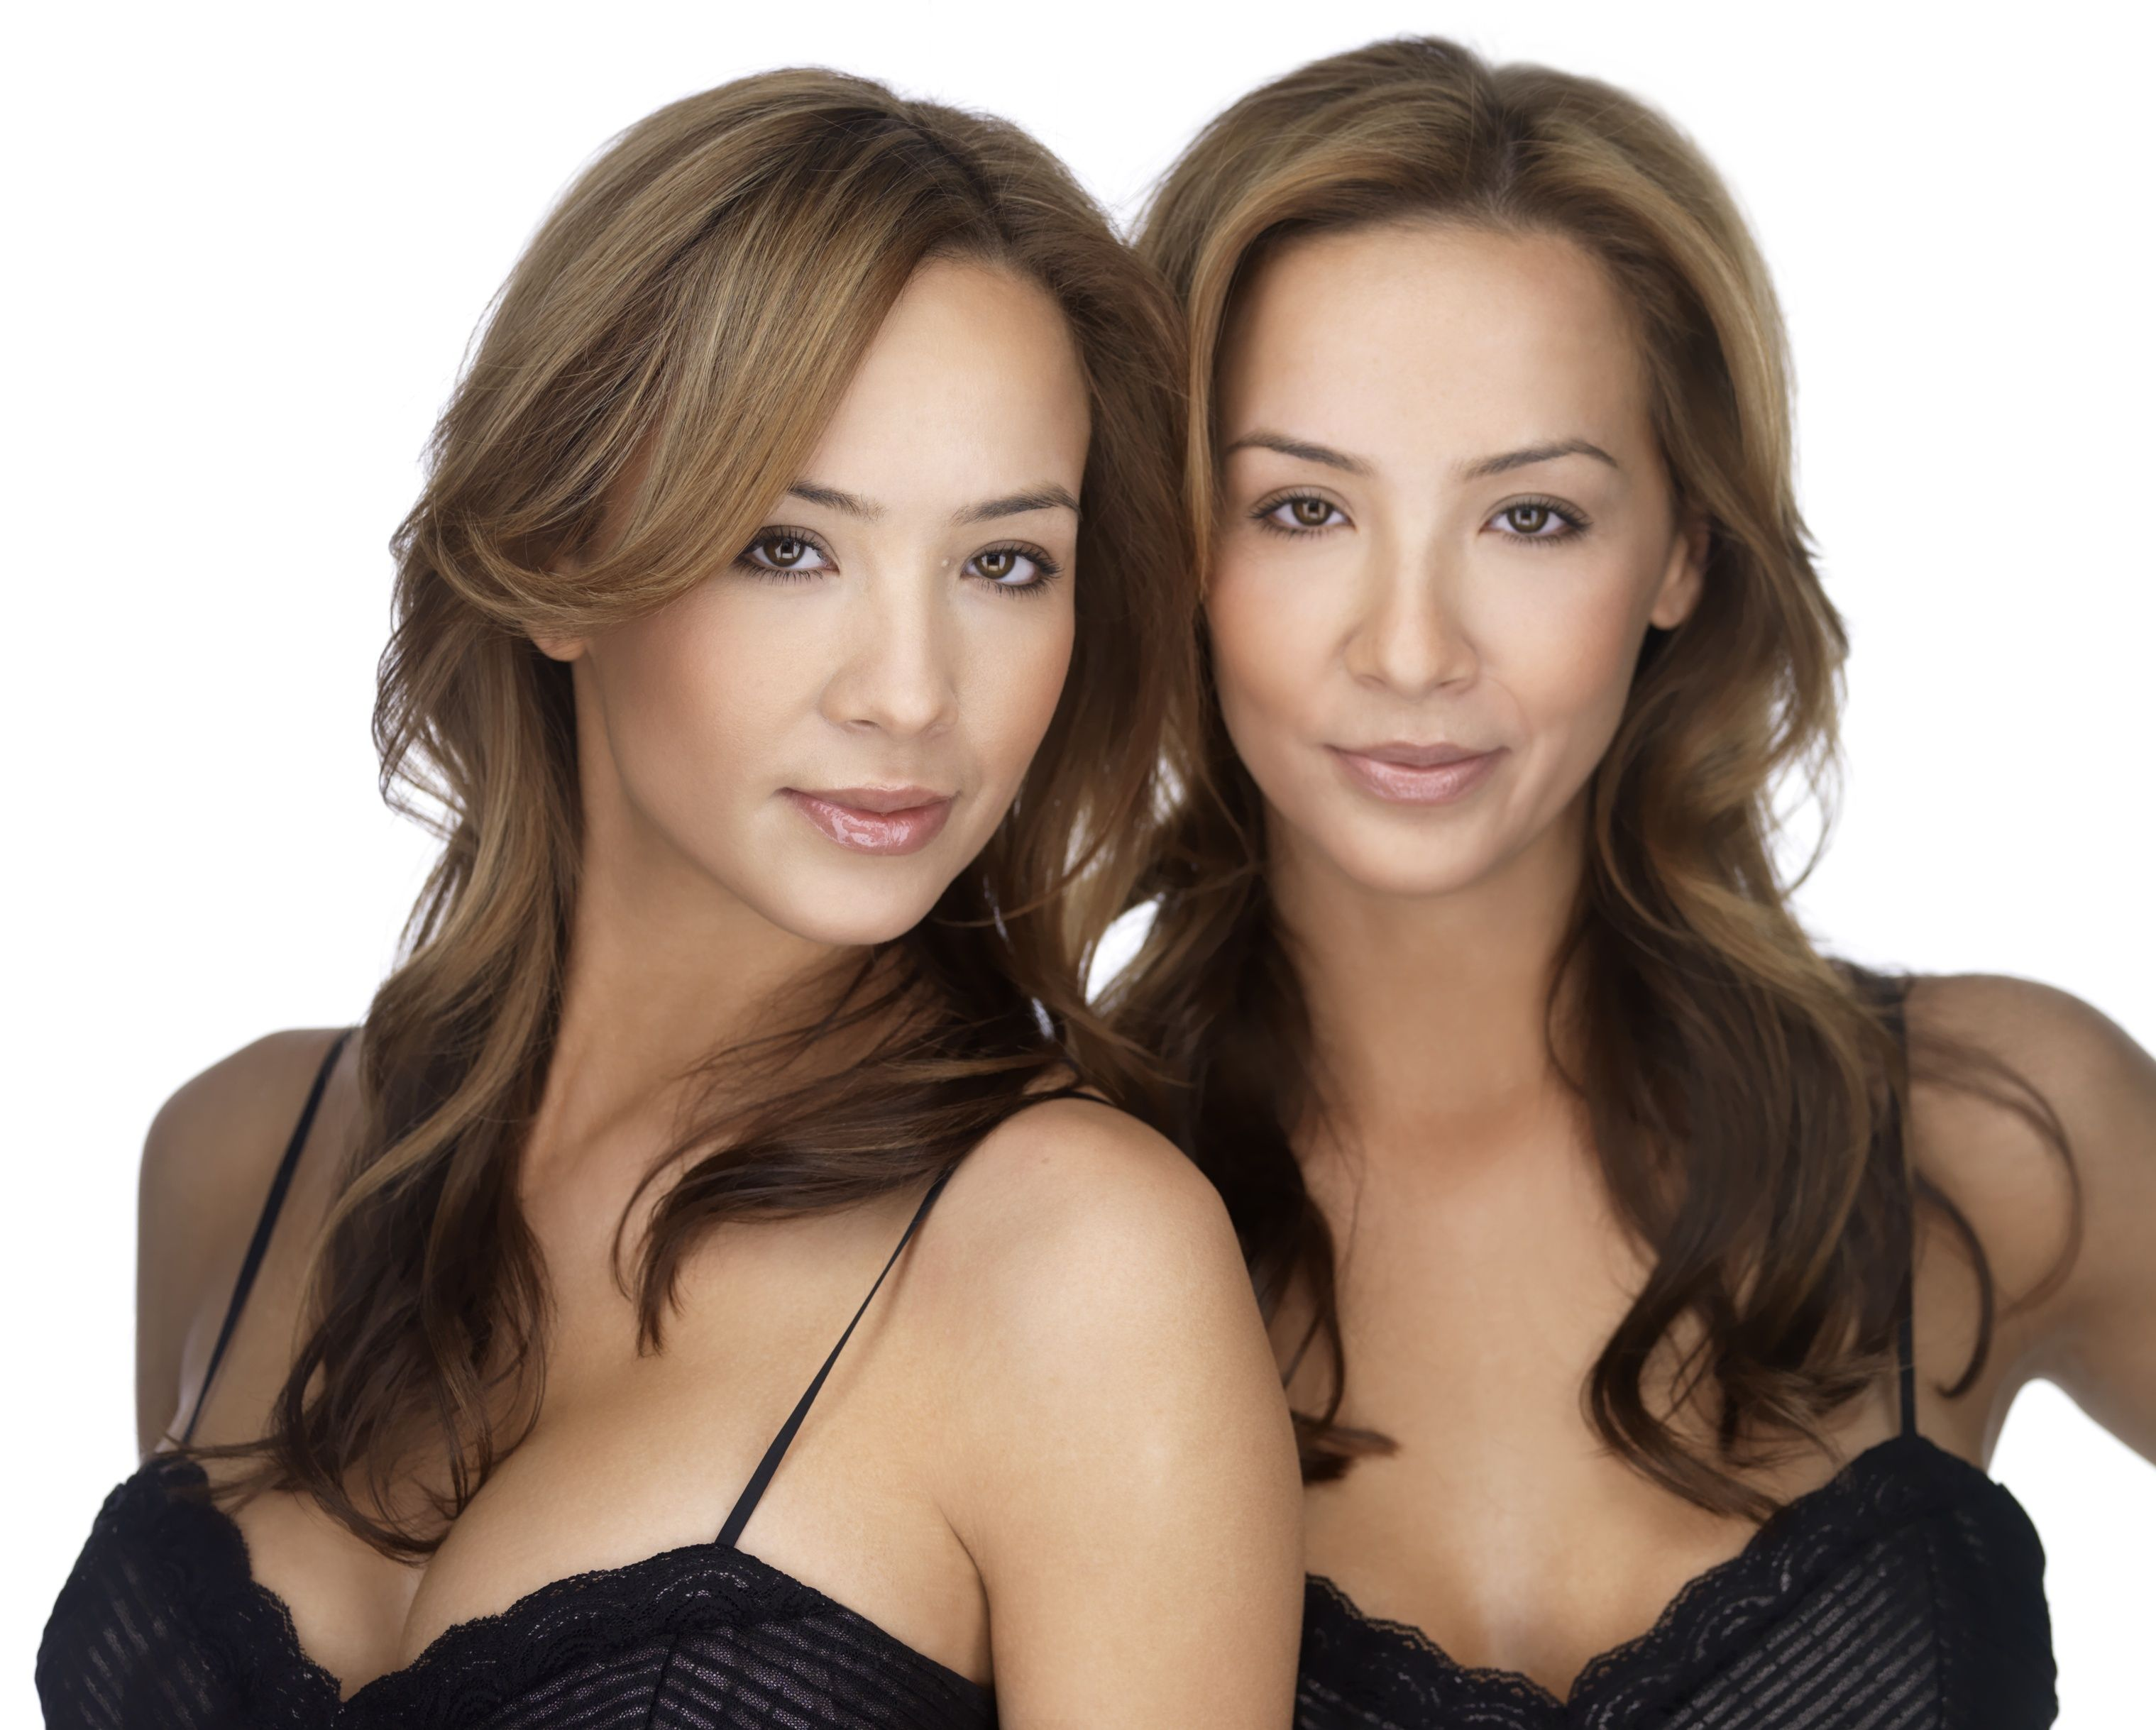 sexy sister identical twin